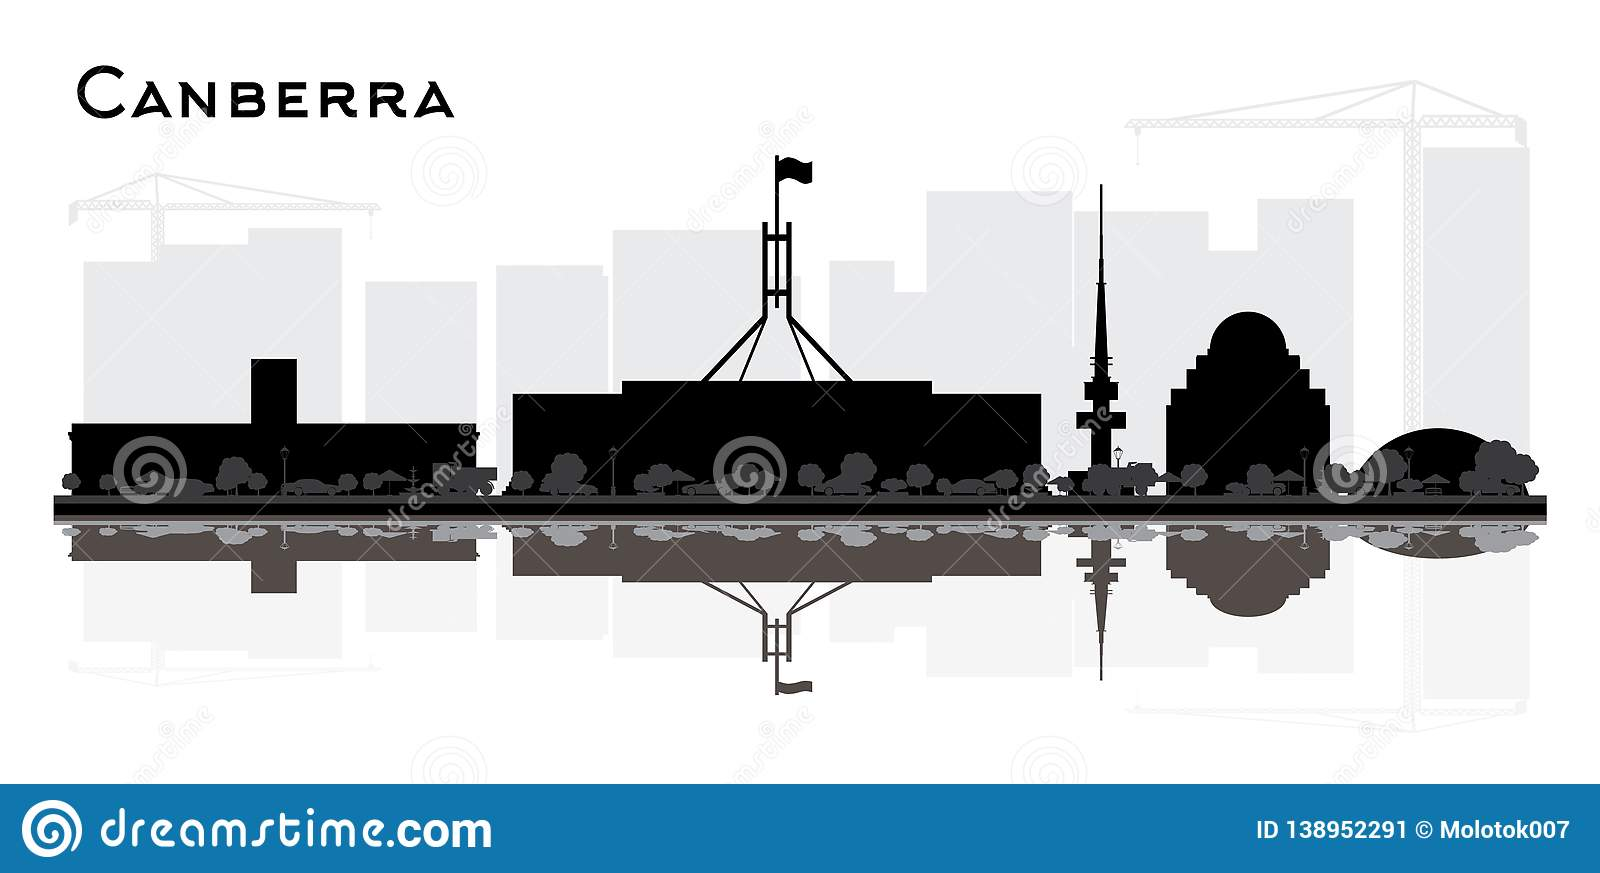 Canberra Australia City Skyline Silhouette with Black Buildings and Reflections Isolated on White